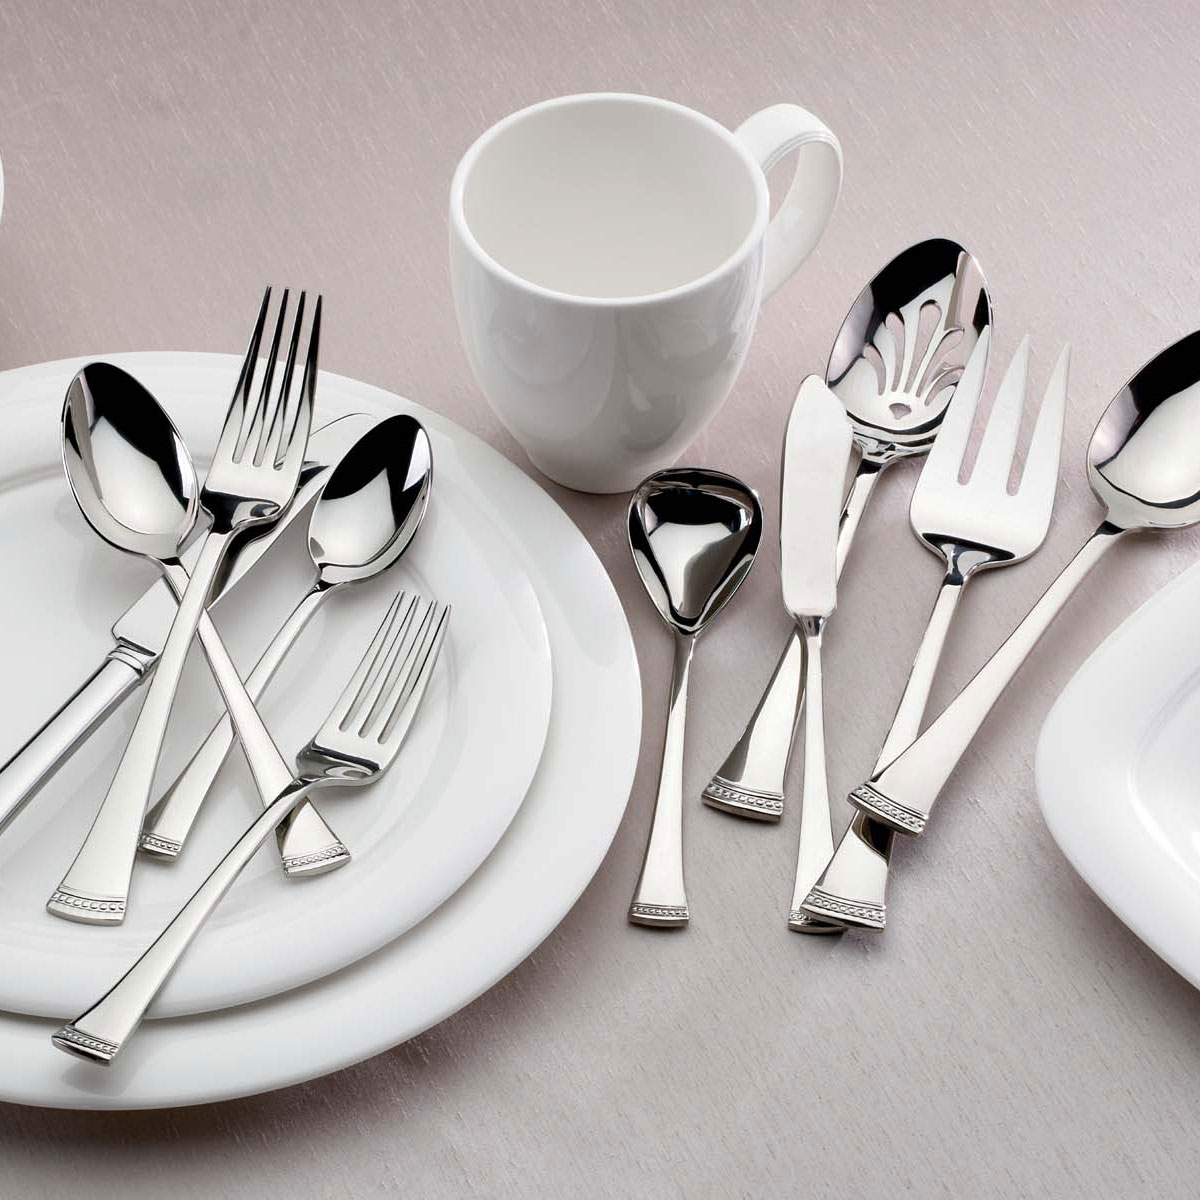 Lenox Flatware Portola 65 Piece Stainless Set